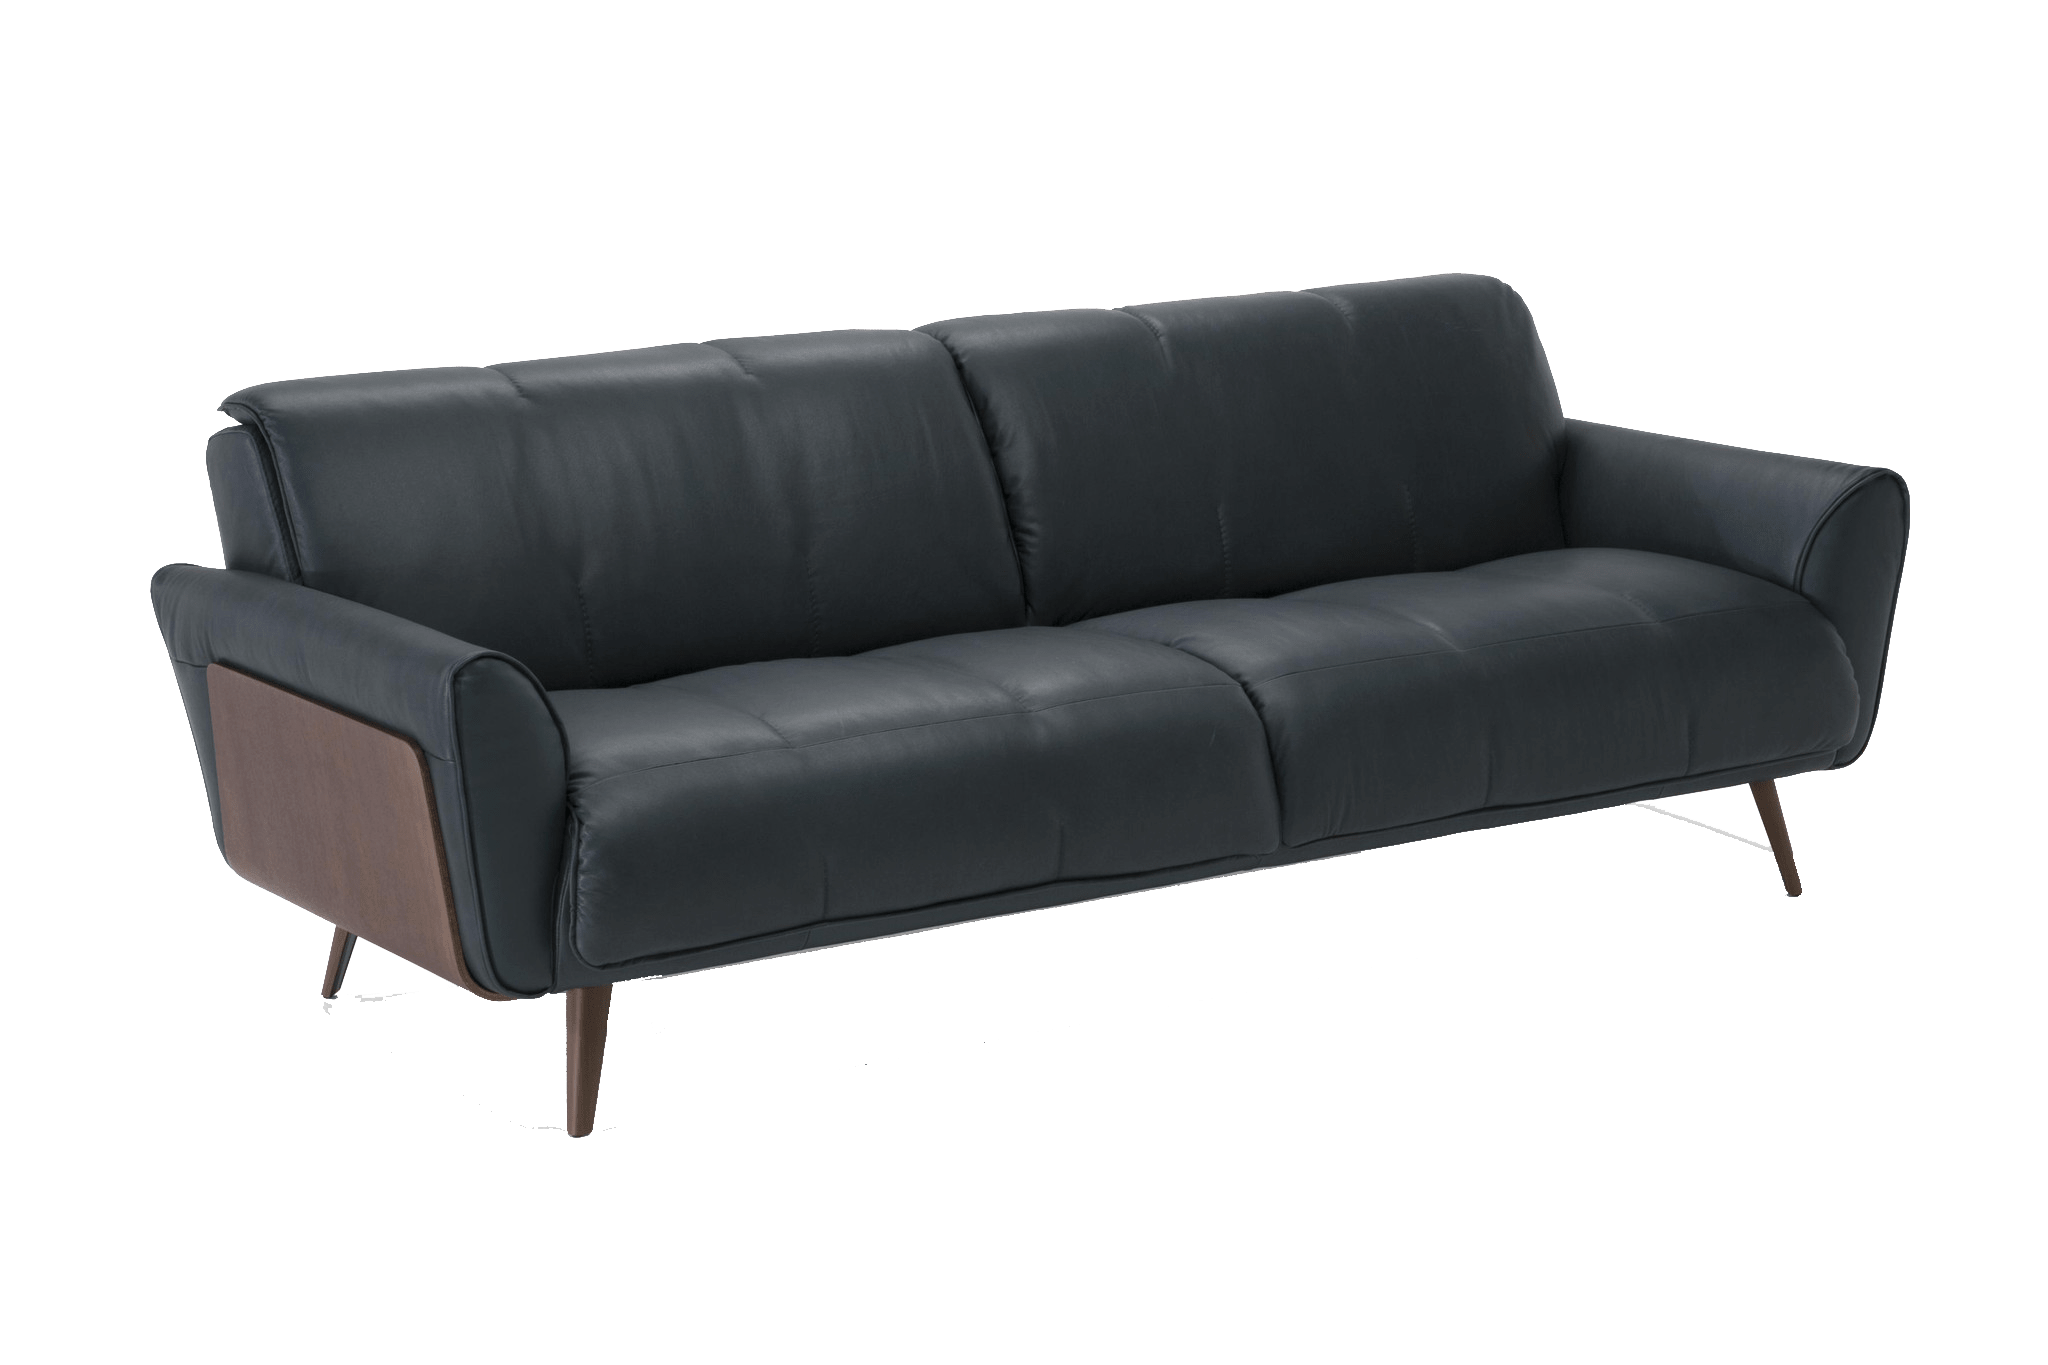 B993 Mid Century Style Leather Sofa – Eurohaus Modern Furniture